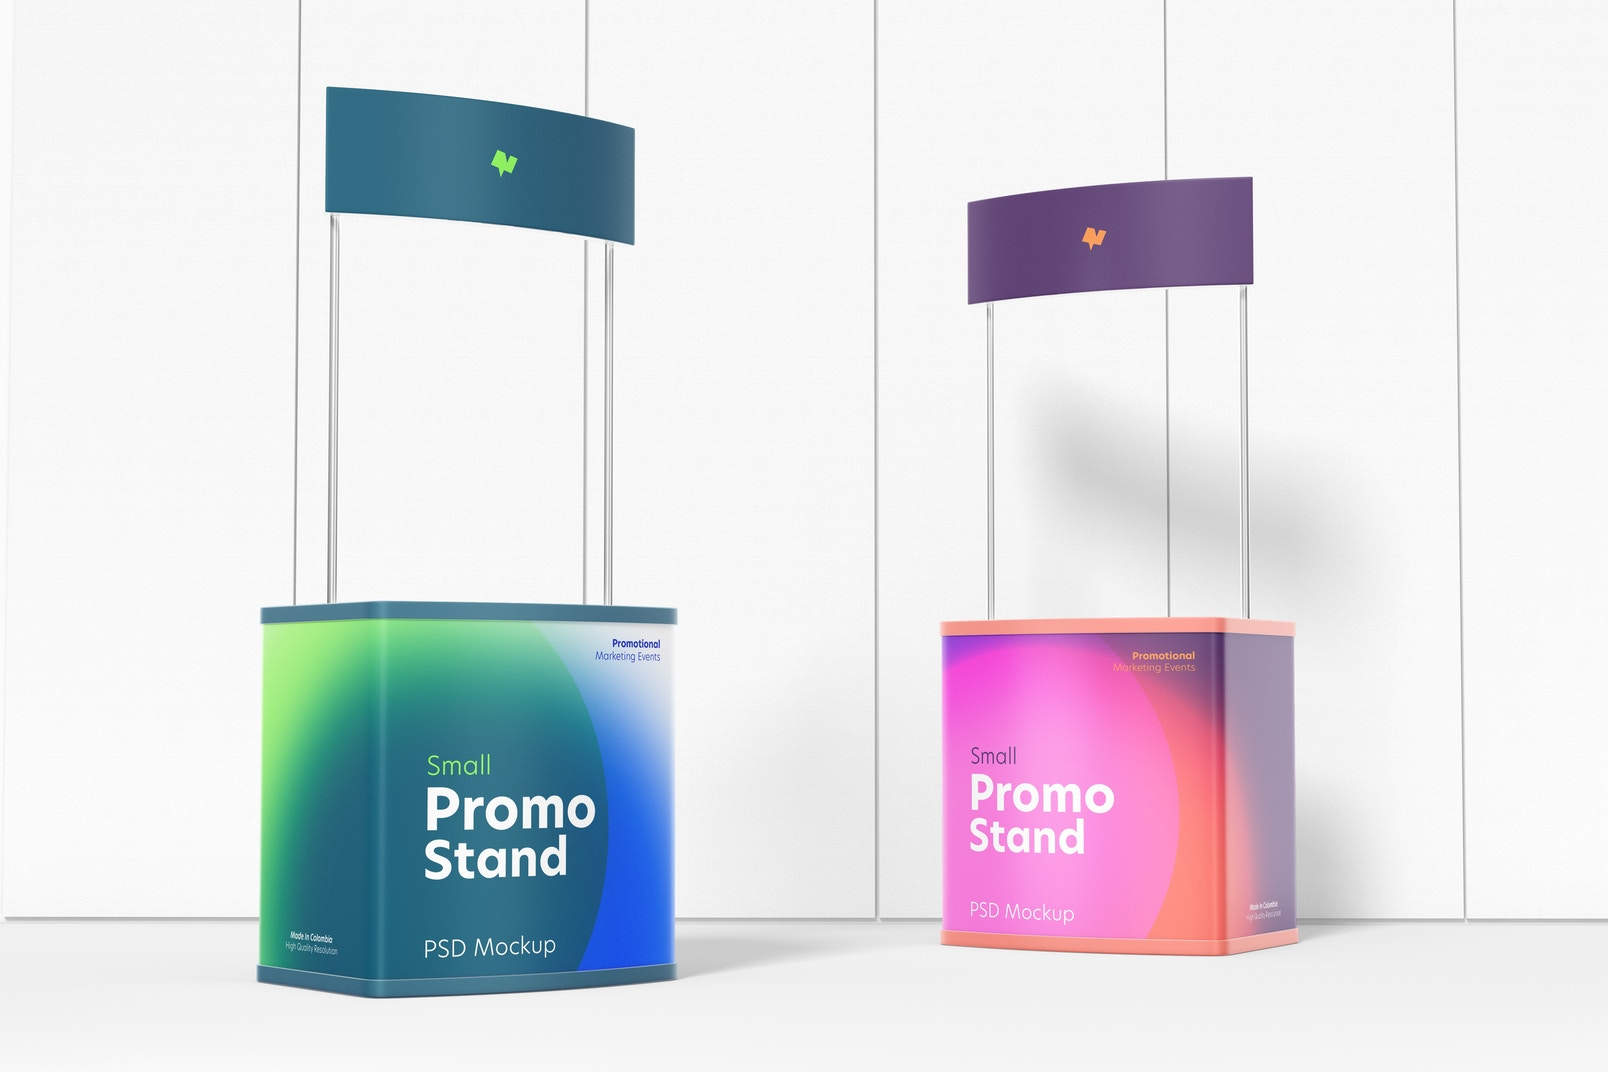 Small Promo Stands Mockup, Perspective